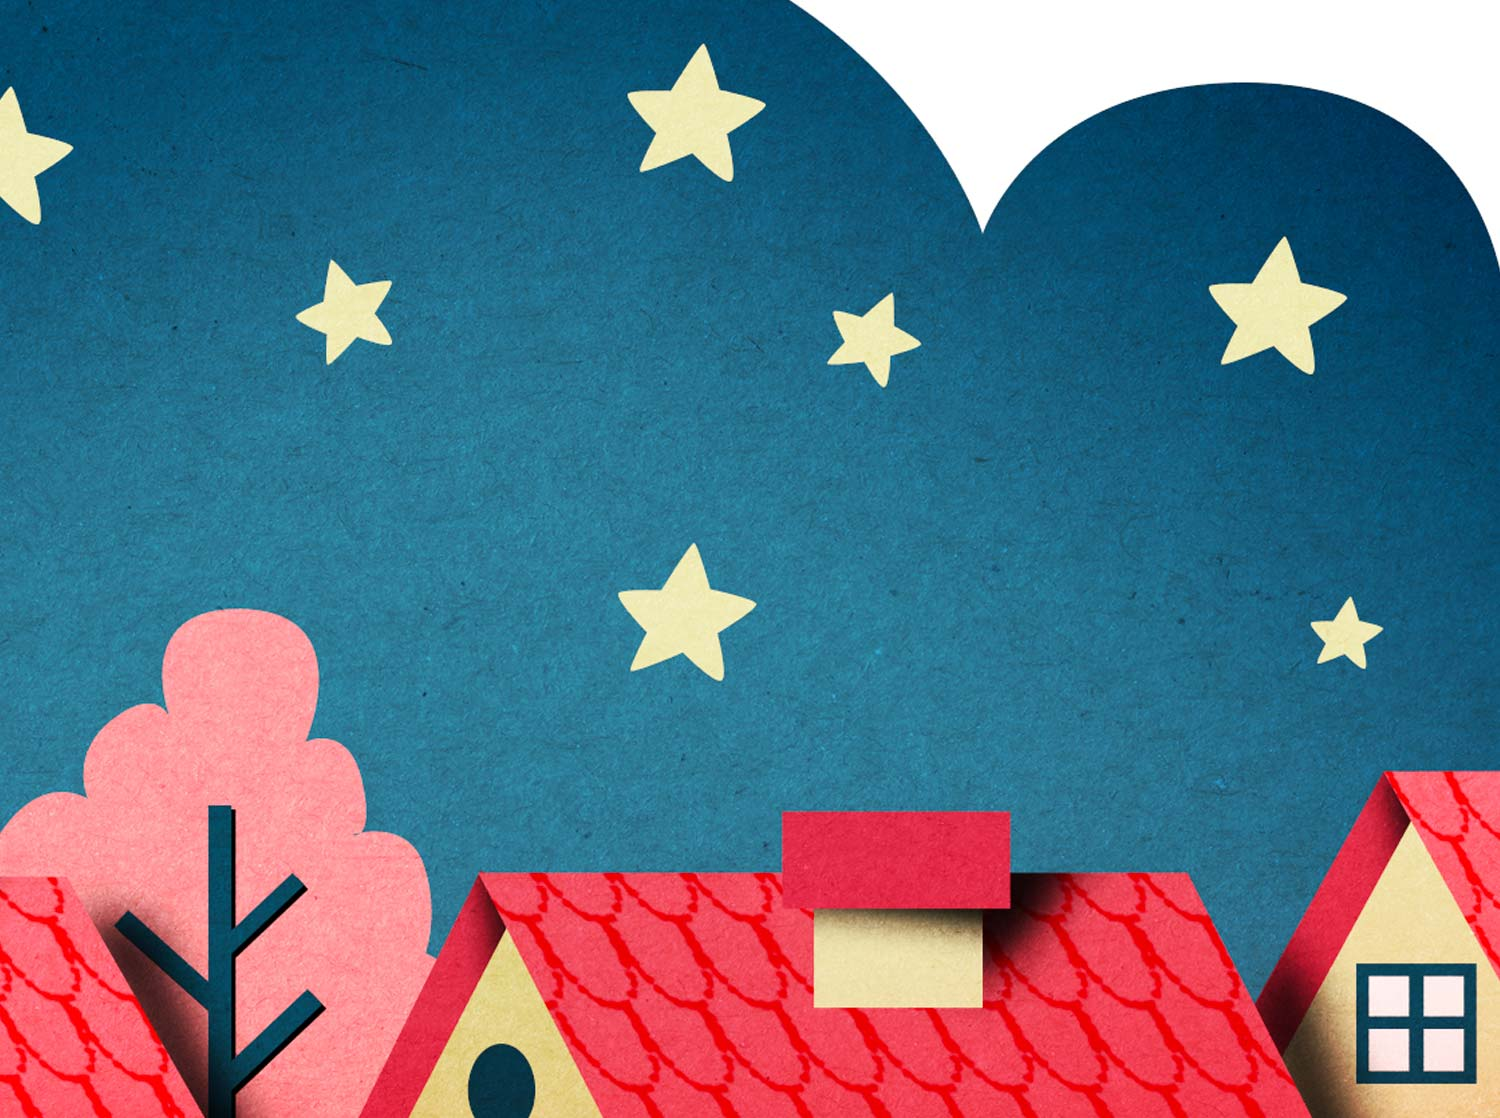 Editorial illustration. Papercut illustration. Paperart. Paper artist. Paper art style. Cut out illustration. Cutout illustration. Paper craft. Paperart style. Stars illustration. Night sky.